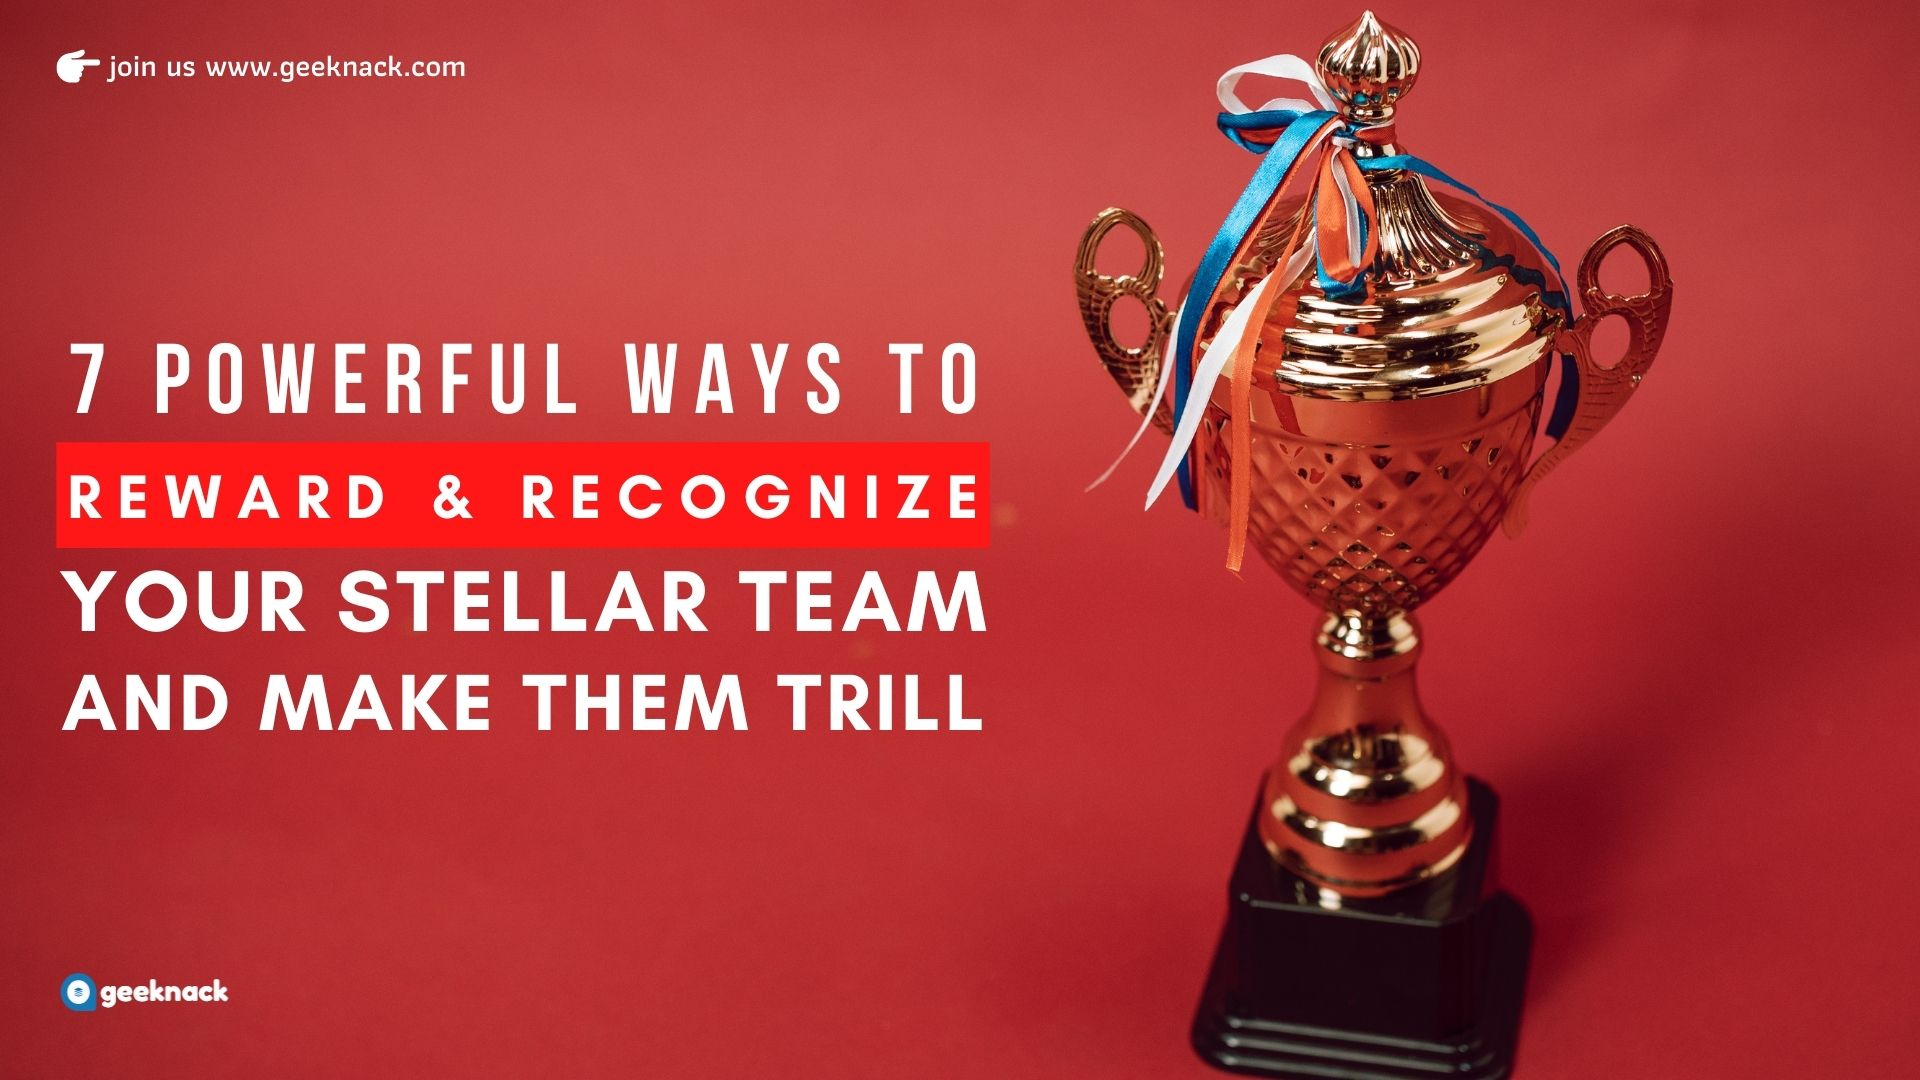 7 Powerful Ways To Reward and Recognize Your Stellar Team And Make Them Trill